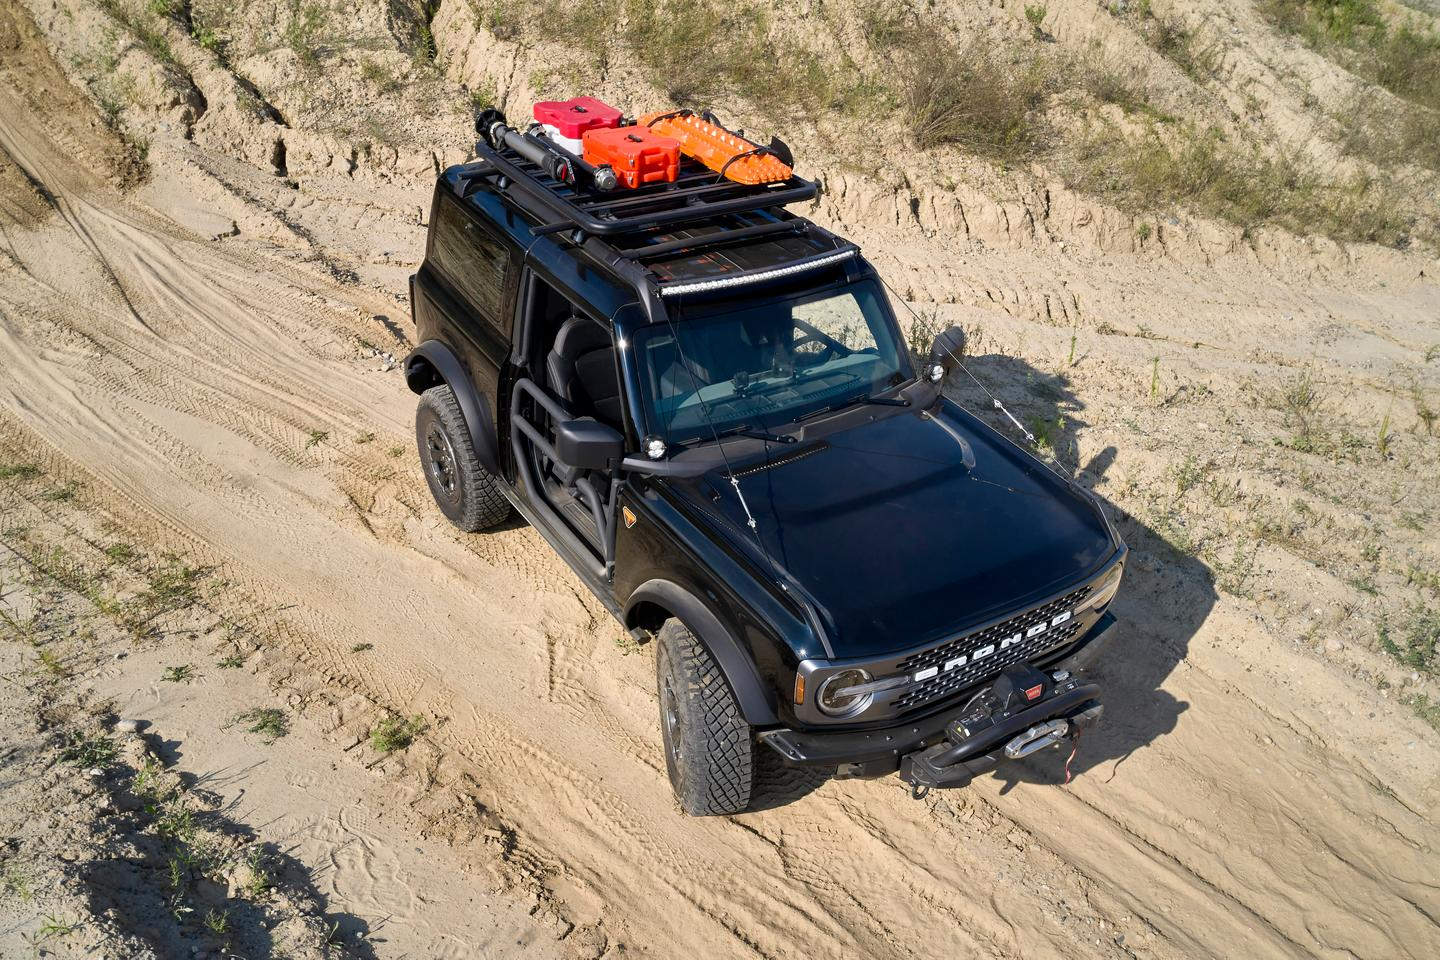 Like the other concepts, the Bronco Two-Door Trail Rig includes Yakima roof storage